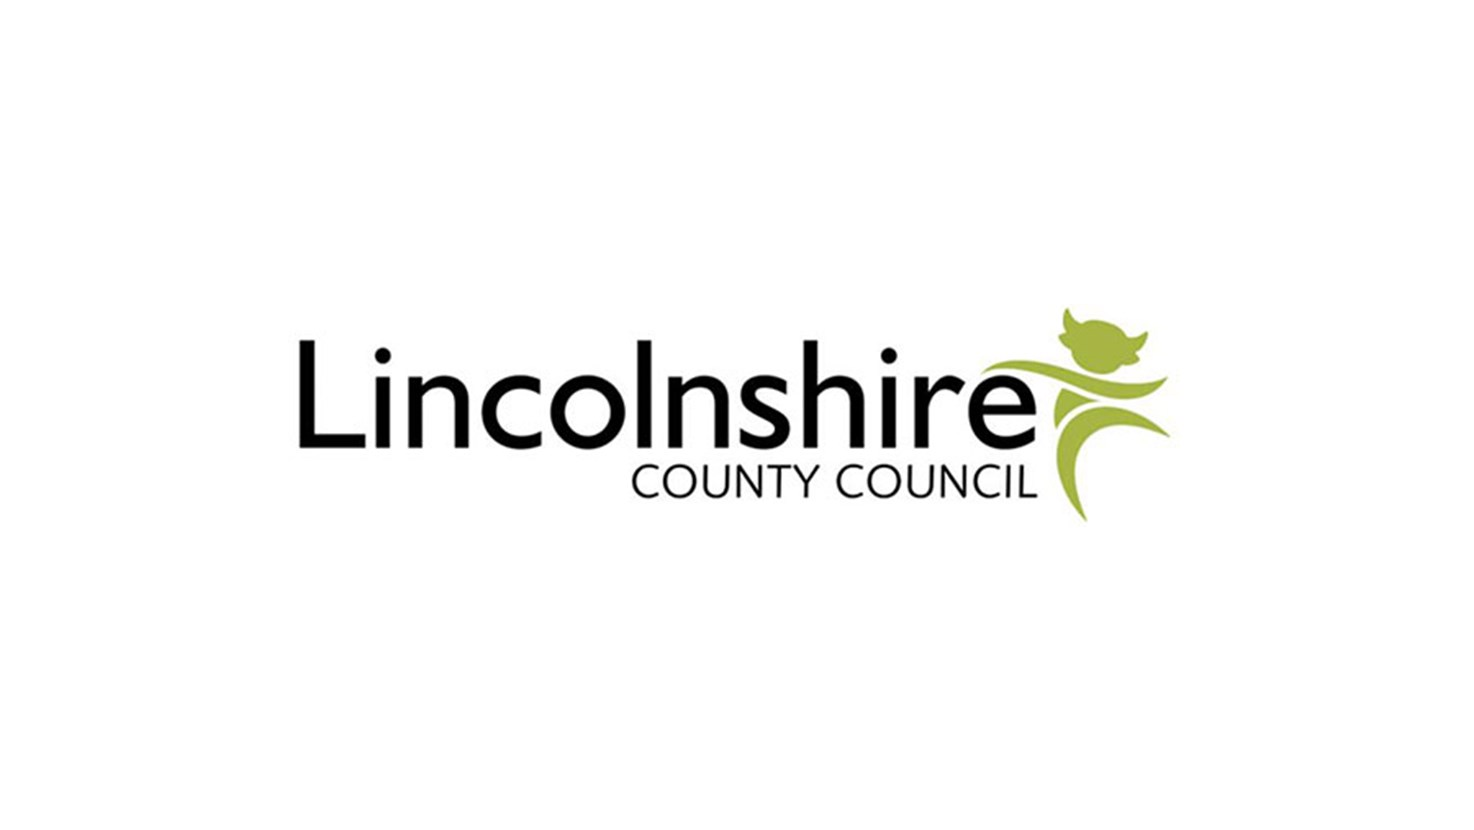 Meetings and events at Lincolnshire County Council in 2016